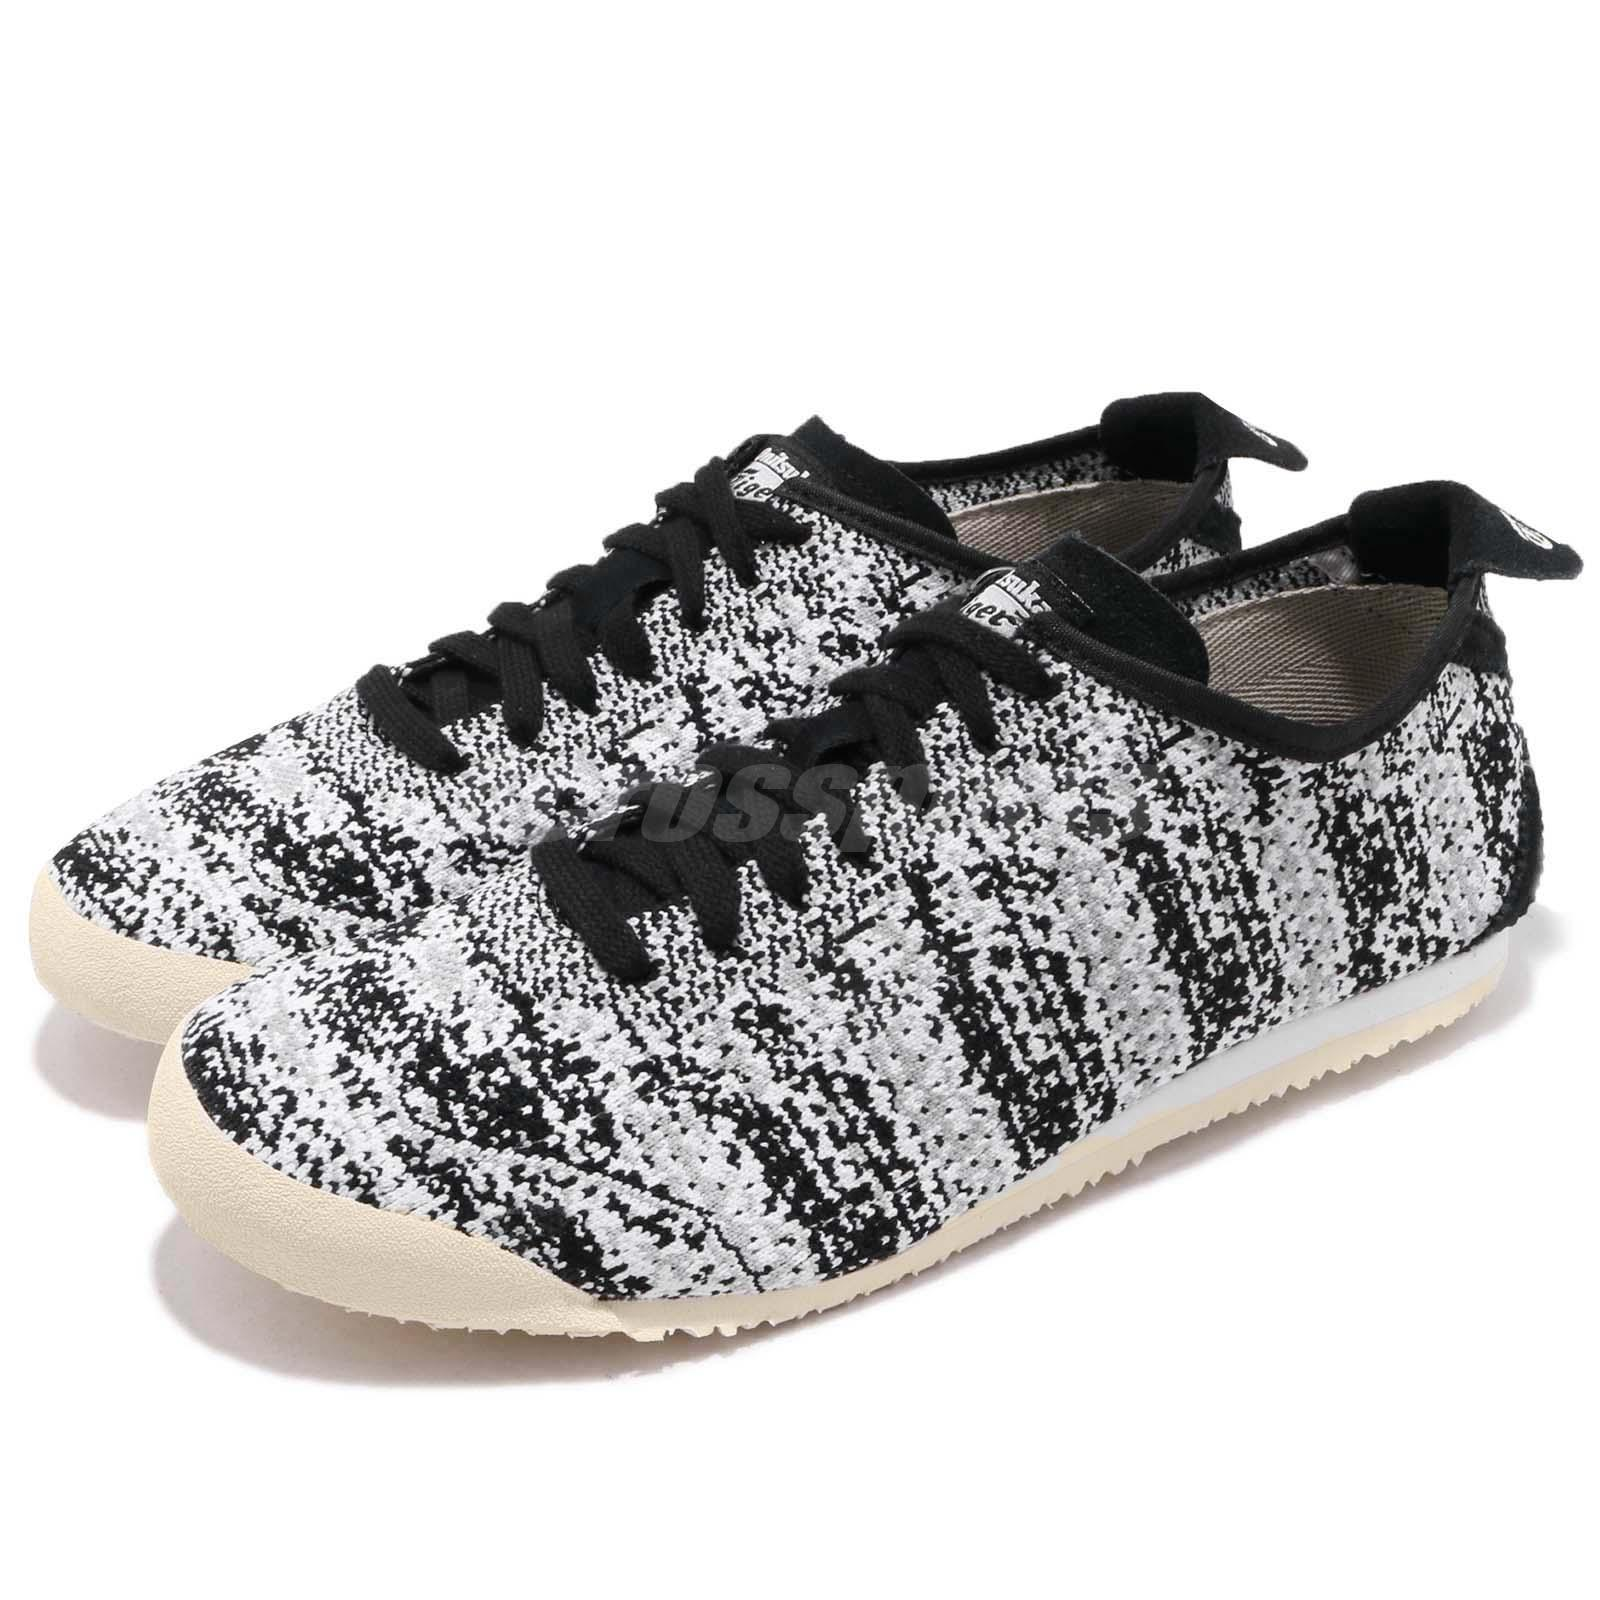 buy popular 37a8c 69c23 Details about Asics Onitsuka Tiger Mexico 66 Knit Black Grey Men Running  Shoes D703N-9090